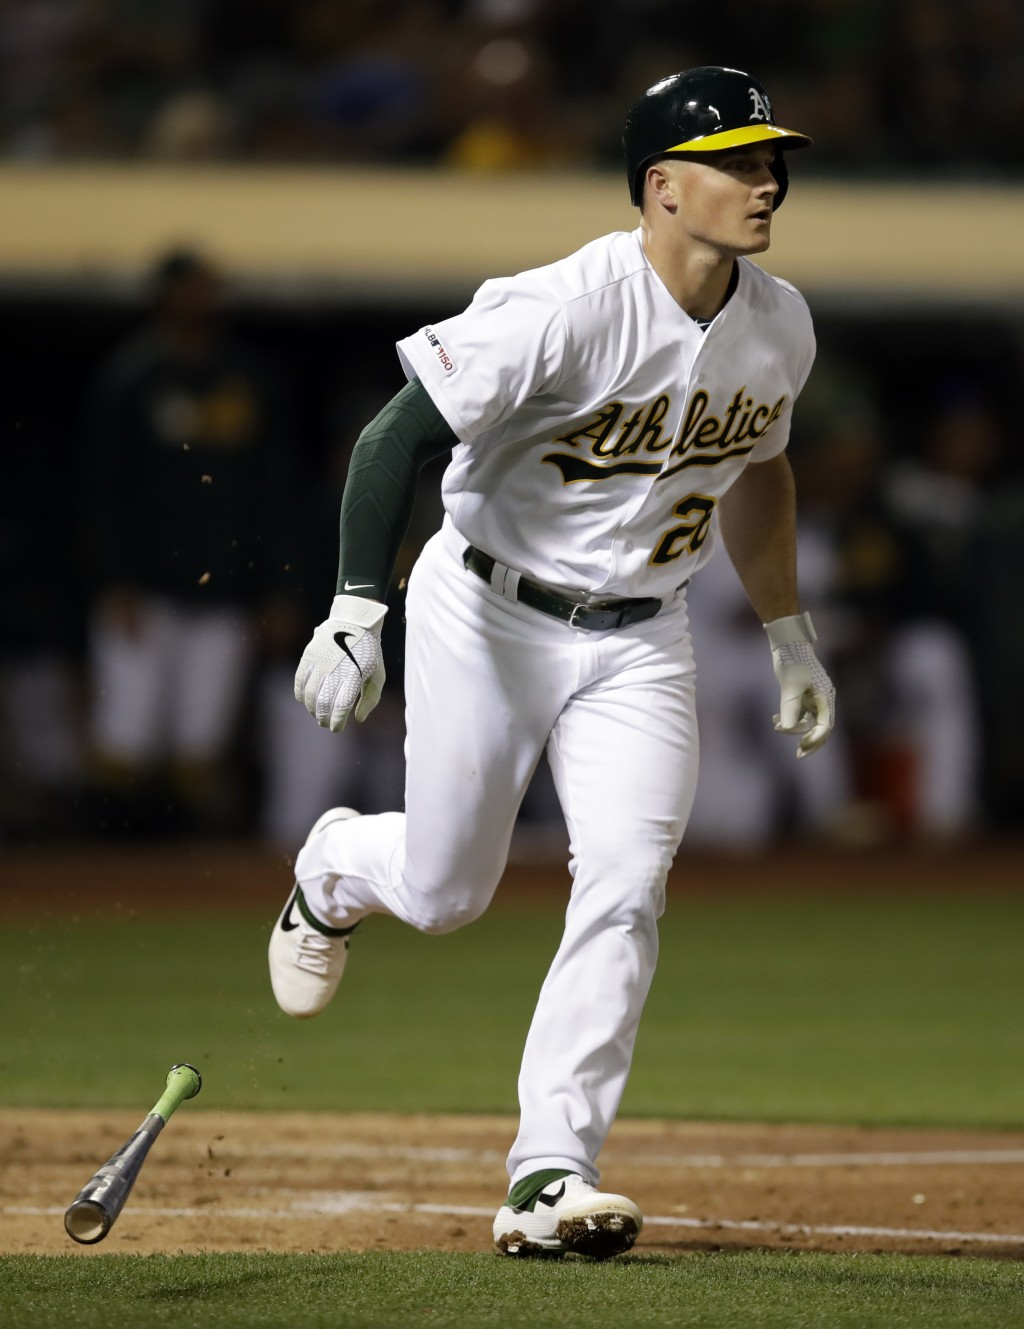 Oakland Athletics' Matt Chapman runs to first base after hitting an RBI-sacrifice fly against the Texas Rangers in the third inning of a baseball game